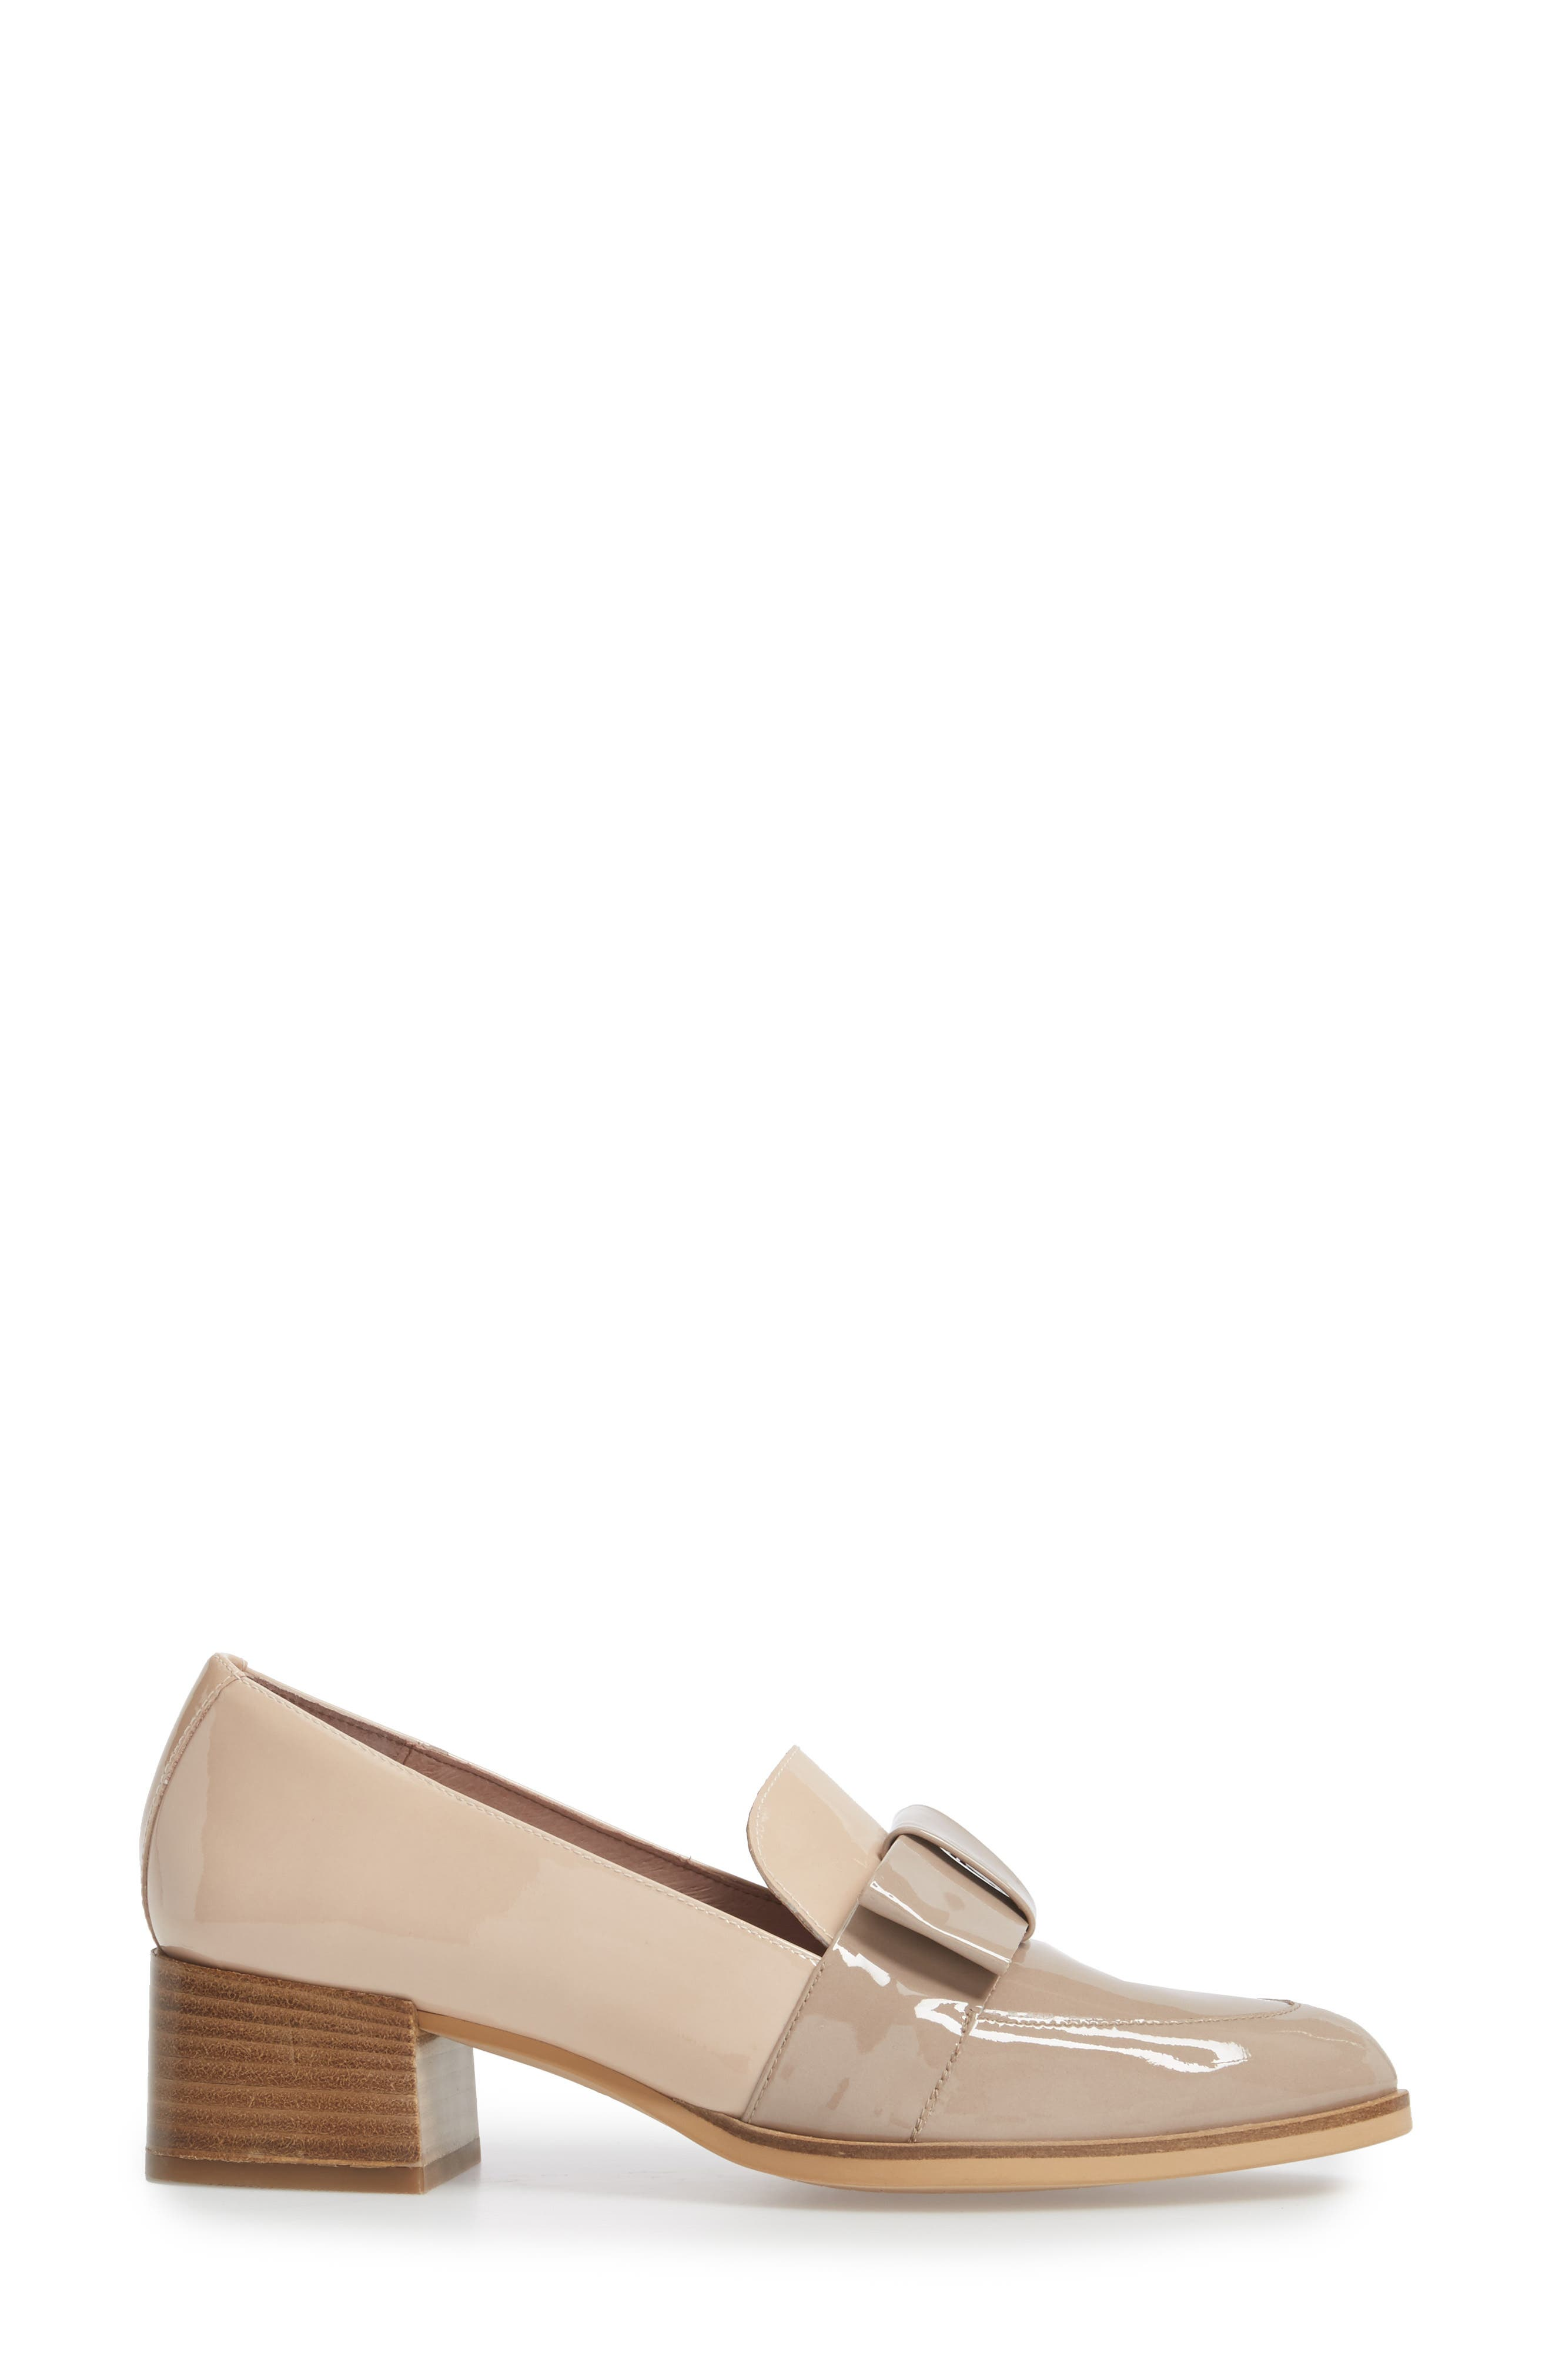 Block Heel Loafer Pump,                             Alternate thumbnail 3, color,                             TAUPE/ PALO PATENT LEATHER